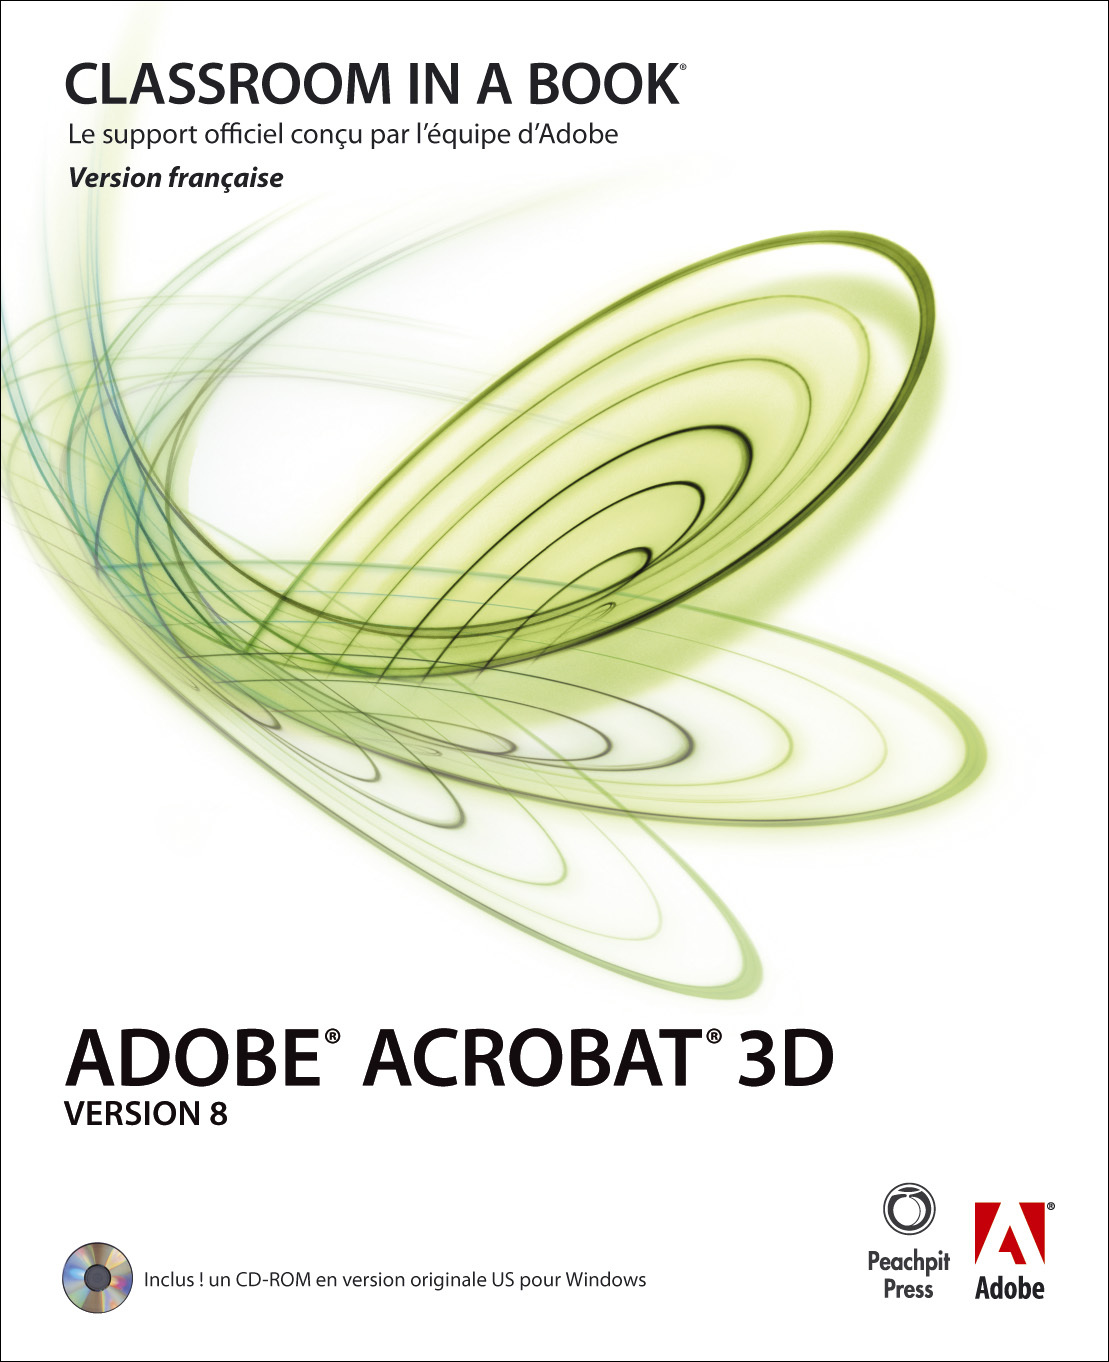 ADOBE ACROBAT 3D VERSION 8